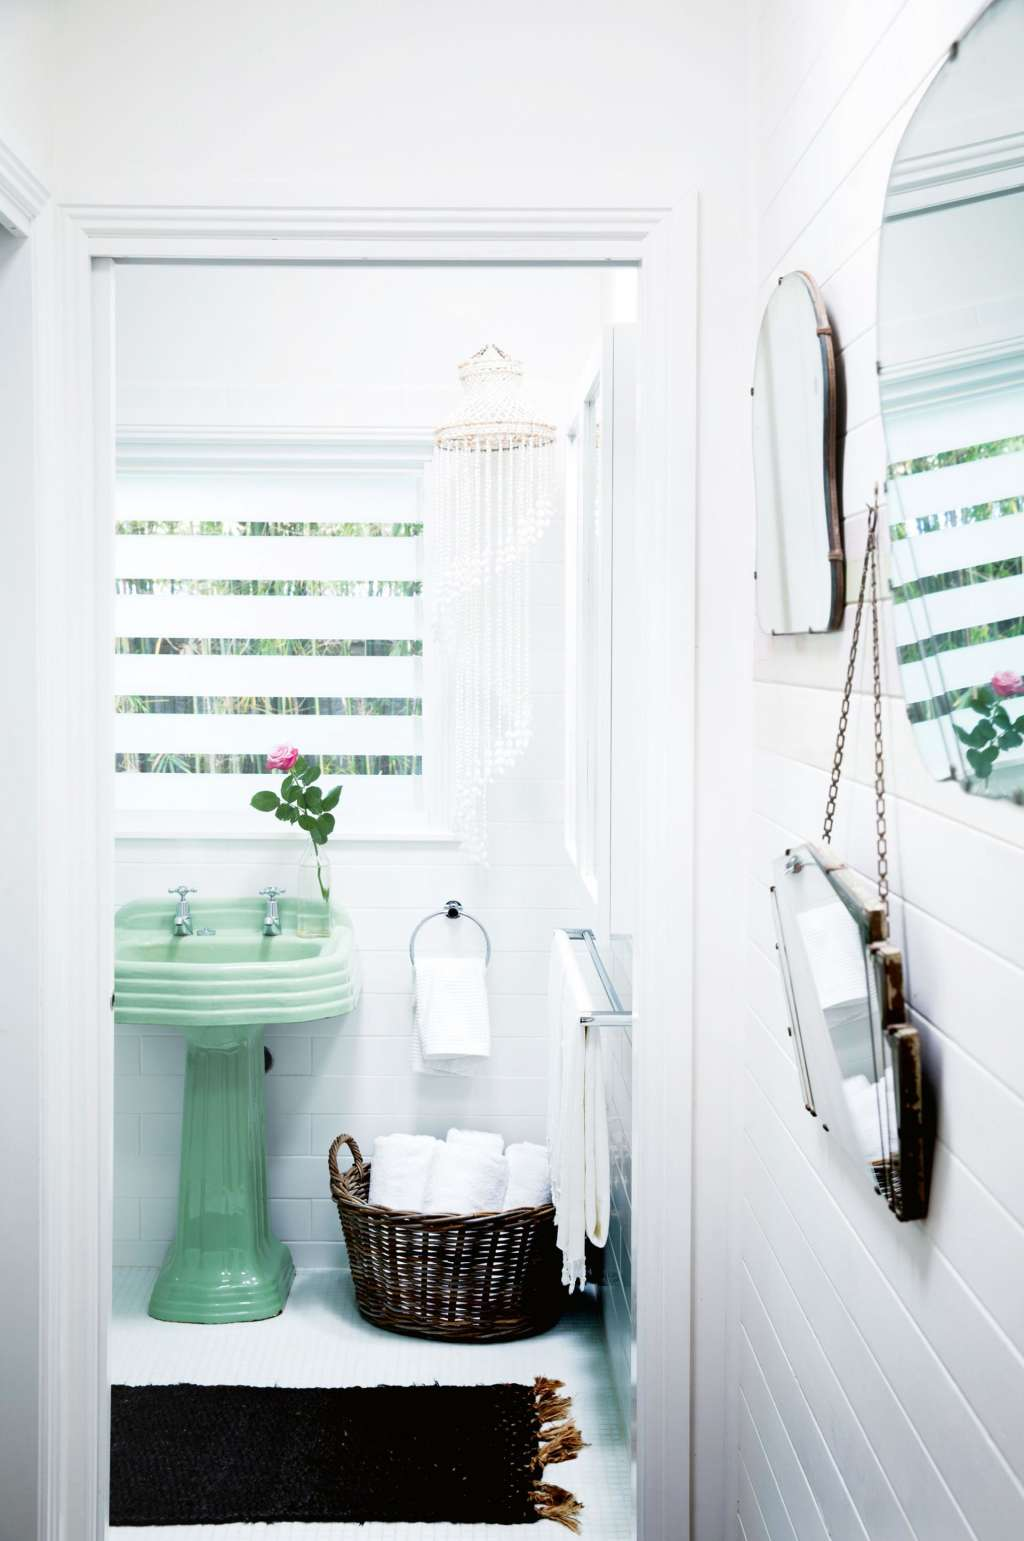 7 Modern Bathrooms with Colorful Vintage Fixtures | Apartment Therapy